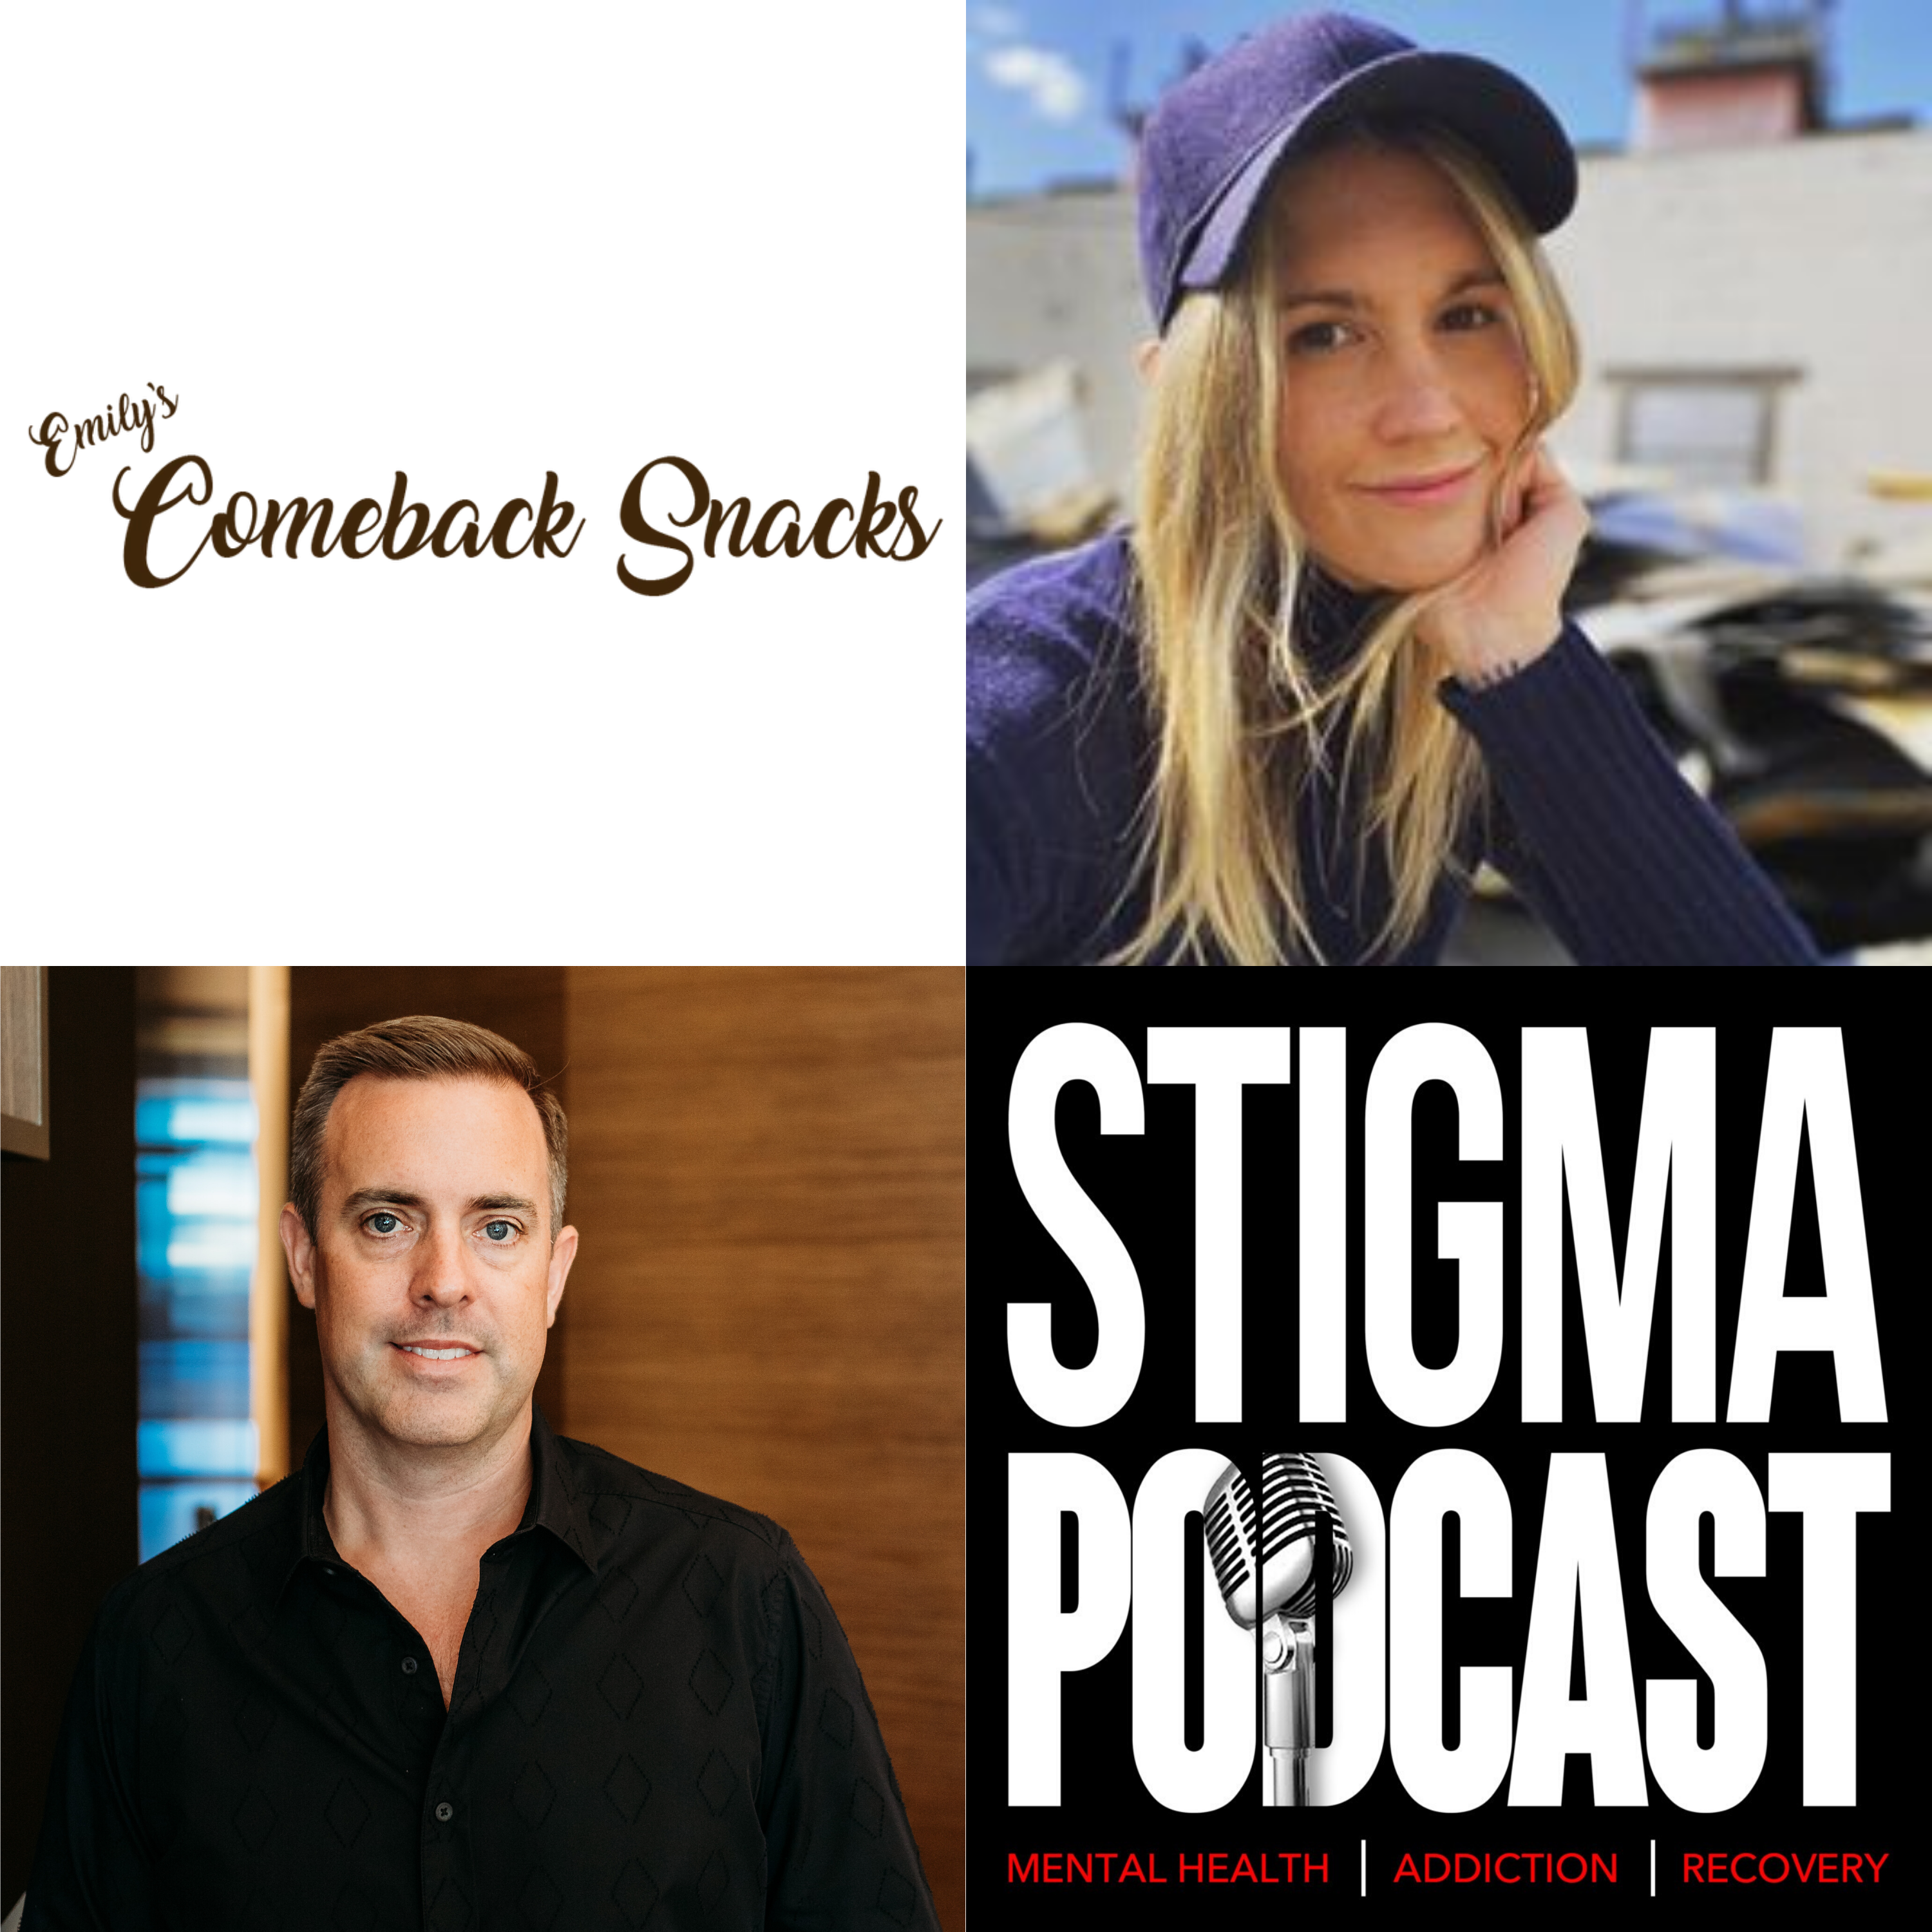 Stigma Podcast - Mental Health - #45 - Starting a Business From Prison with Emily O'Brien Founder of Comeback Snacks